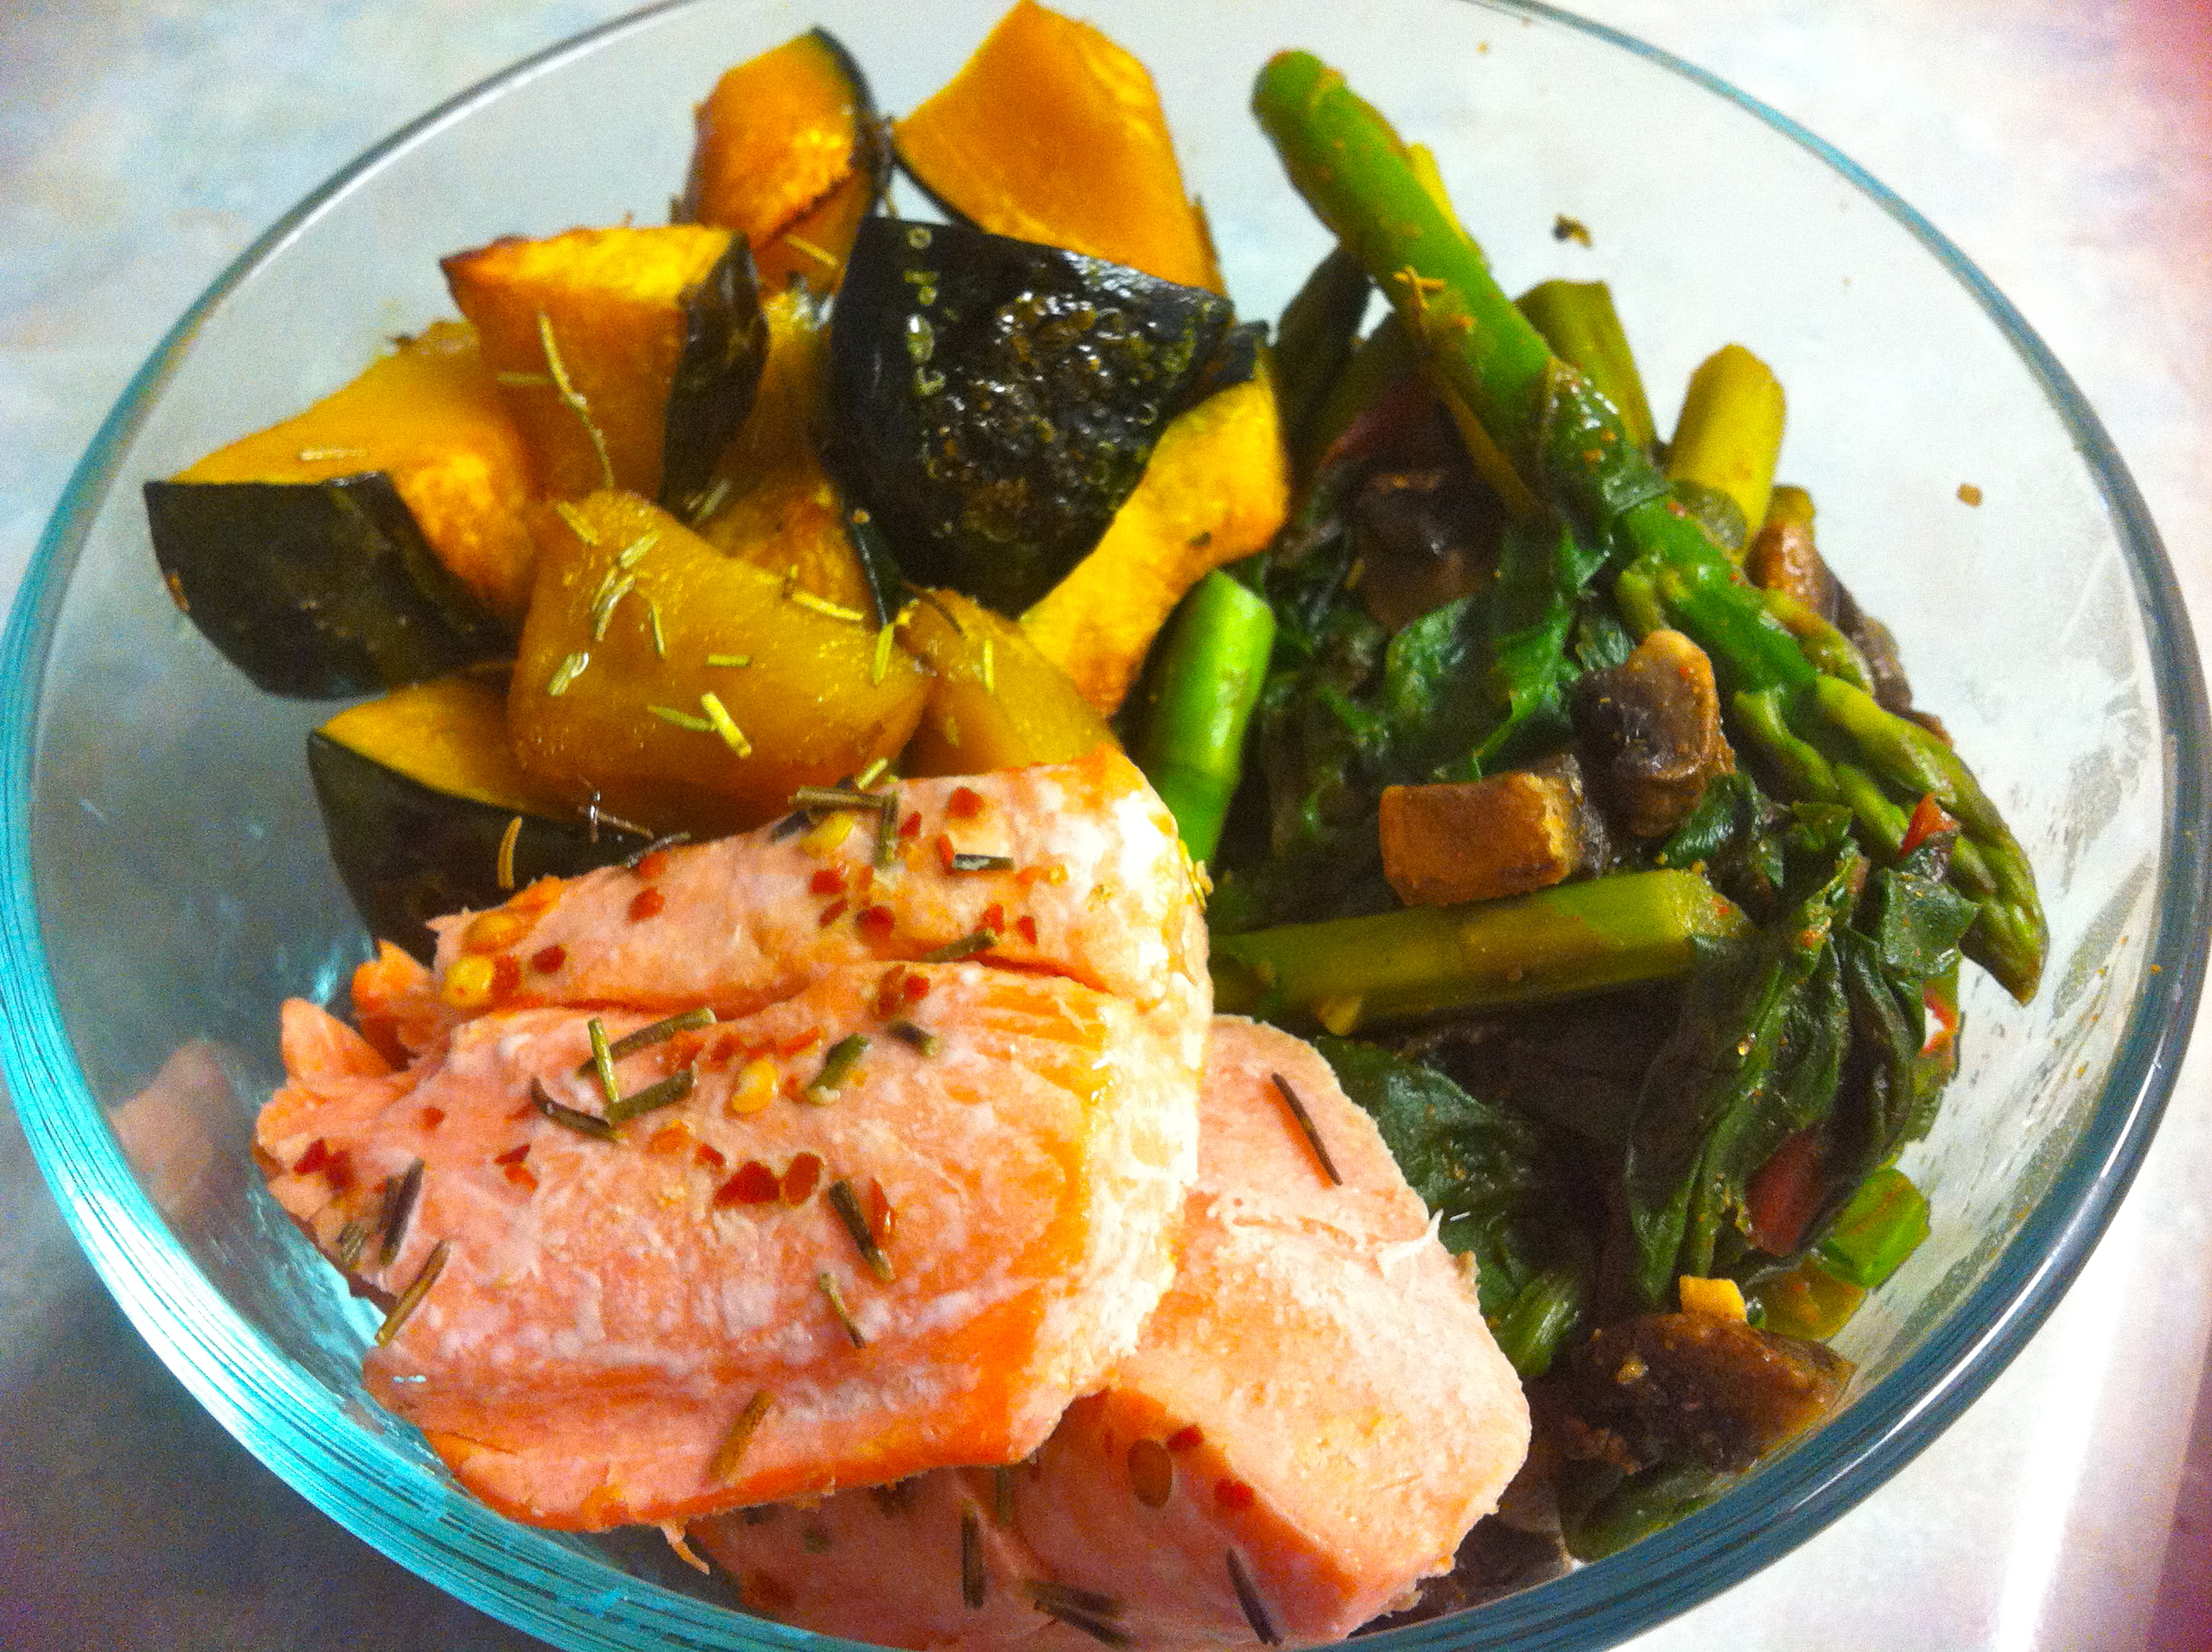 Quick food lil miss fitness freak for Side dishes for baked fish